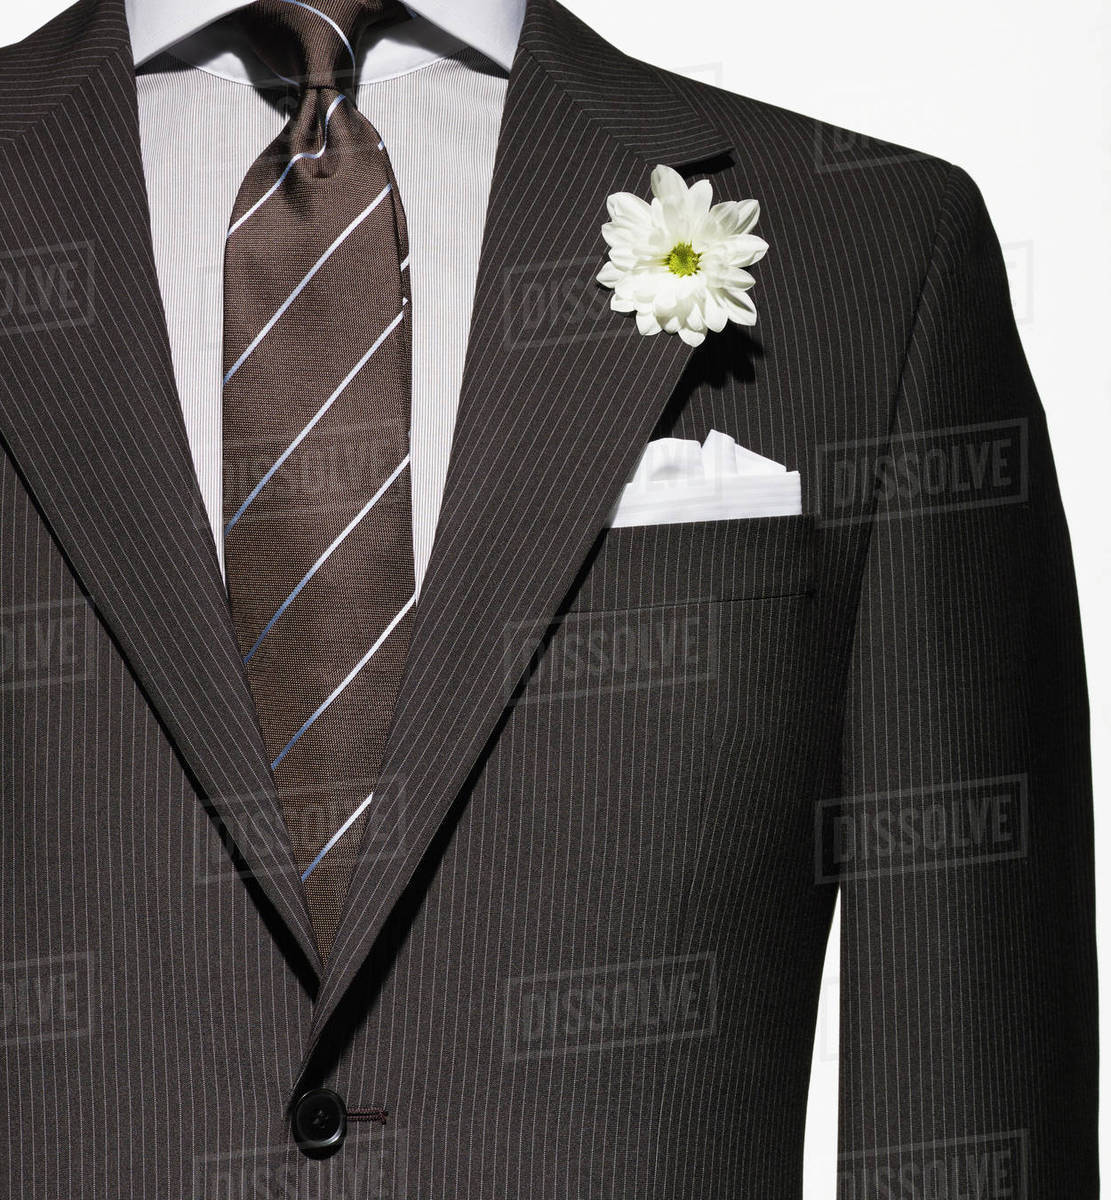 b274a00e43587 Detail of a brown suit jacket with shirt and necktie, and white handkerchief  and flower